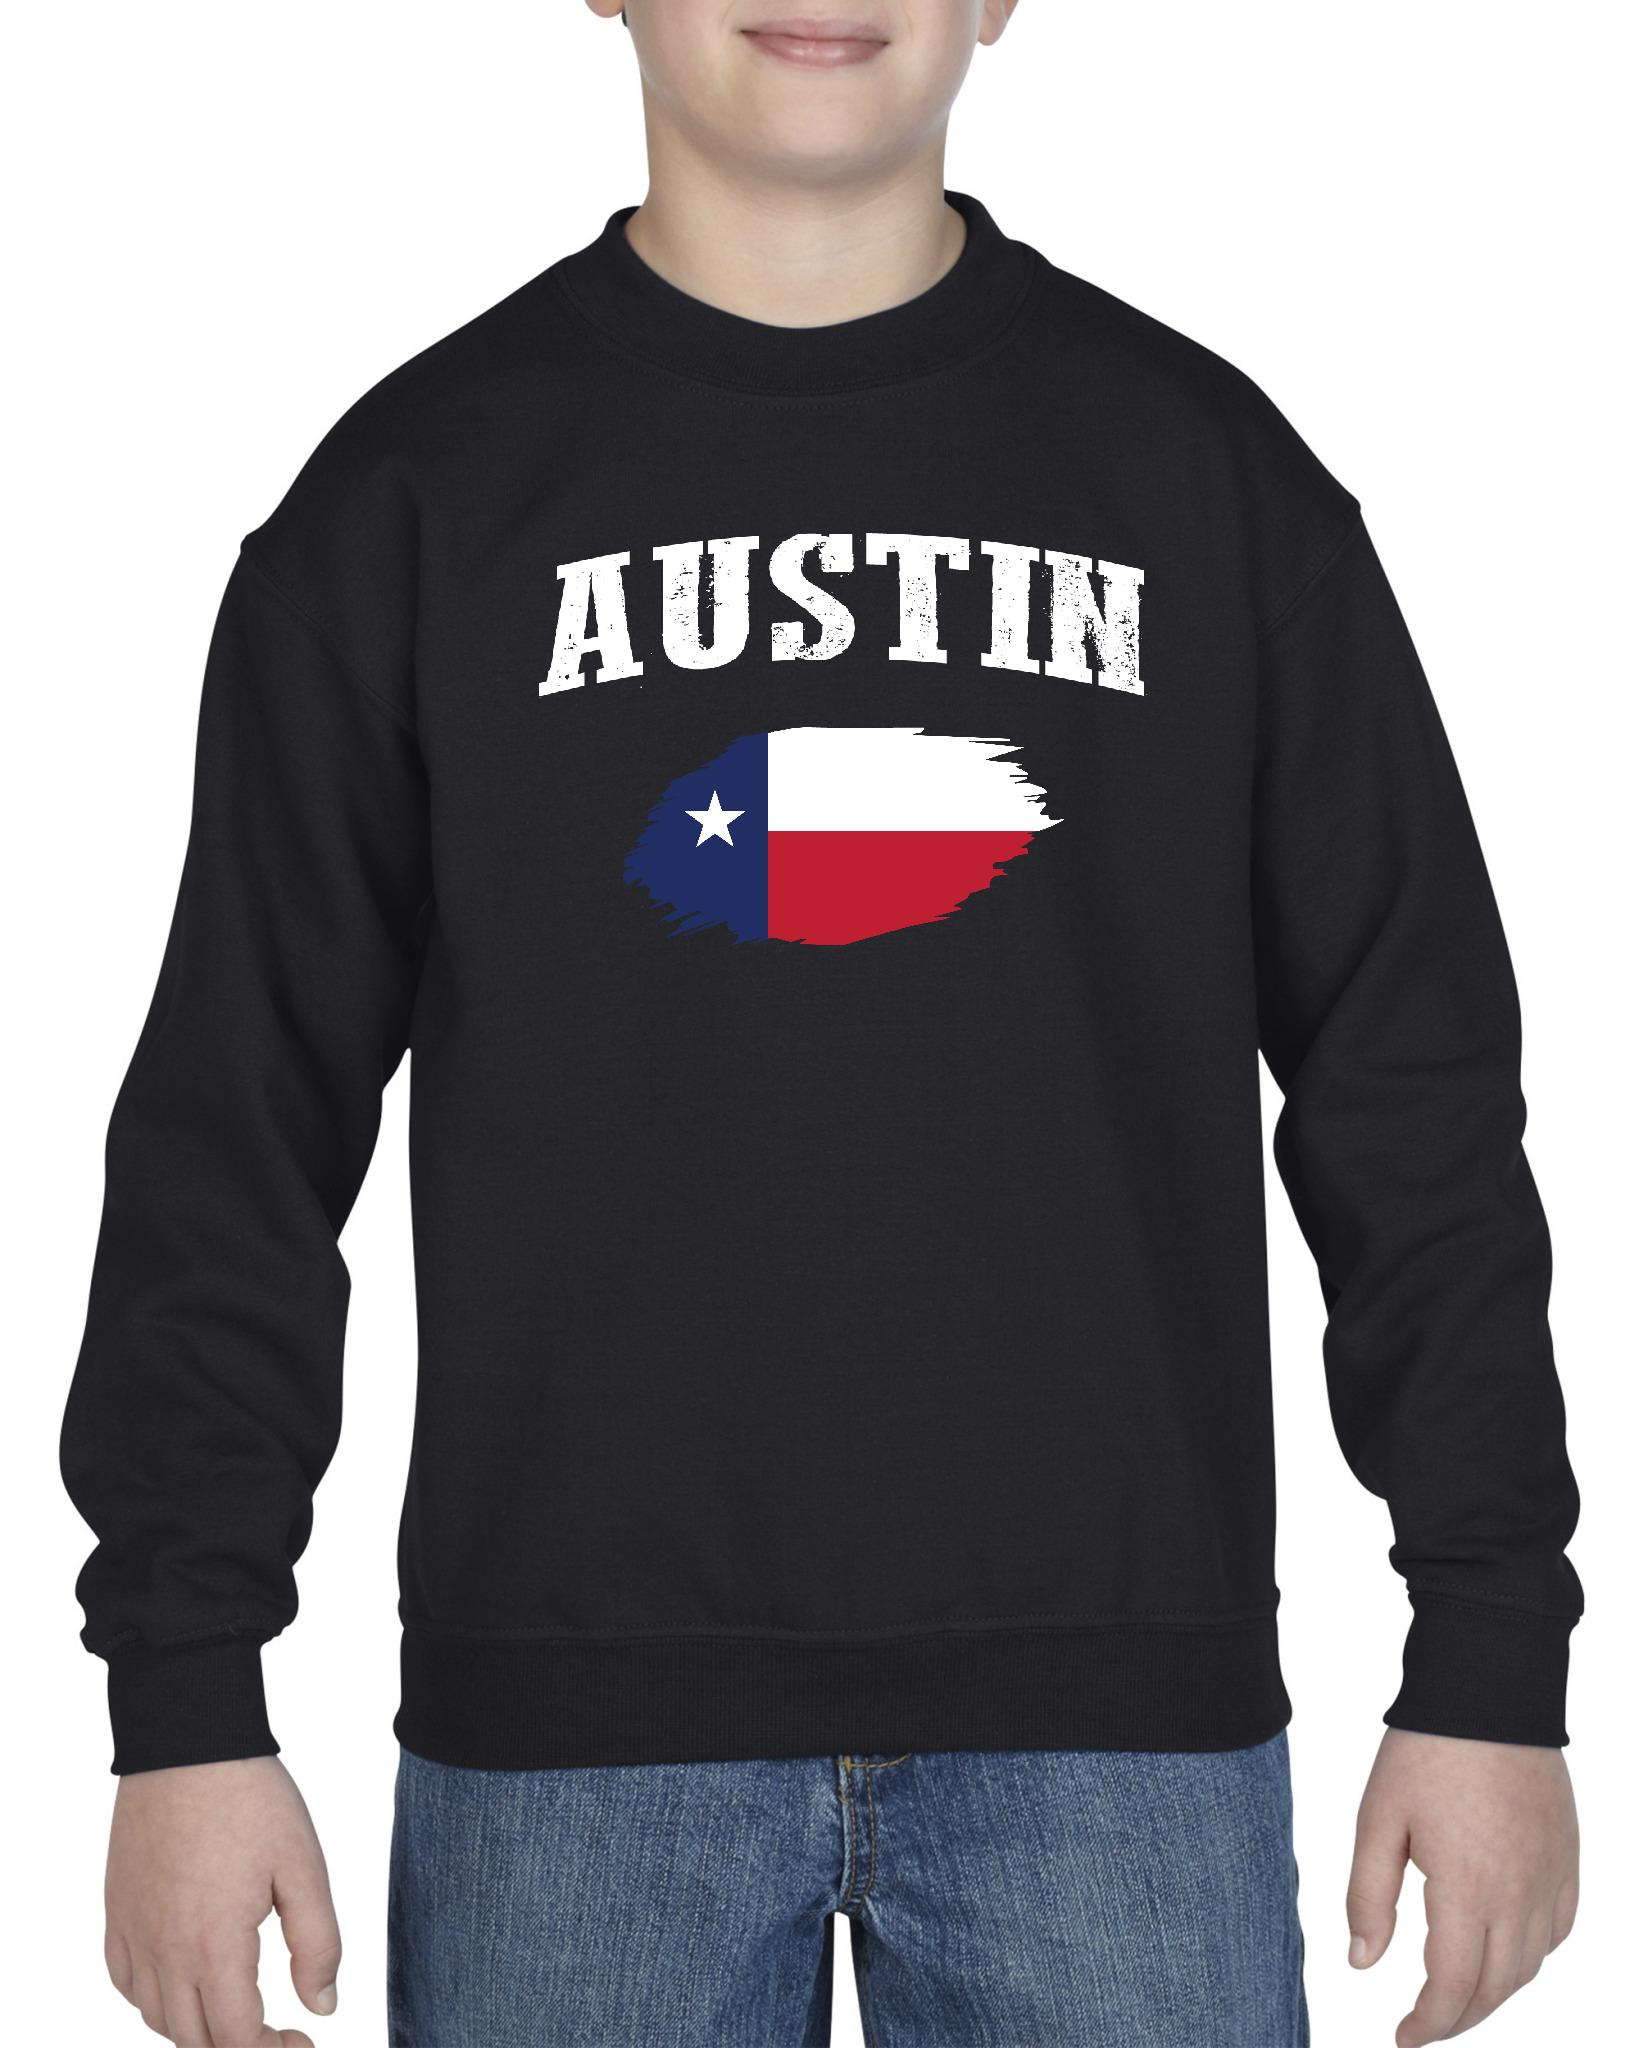 Austin Texas Youth Crewneck Sweatshirt